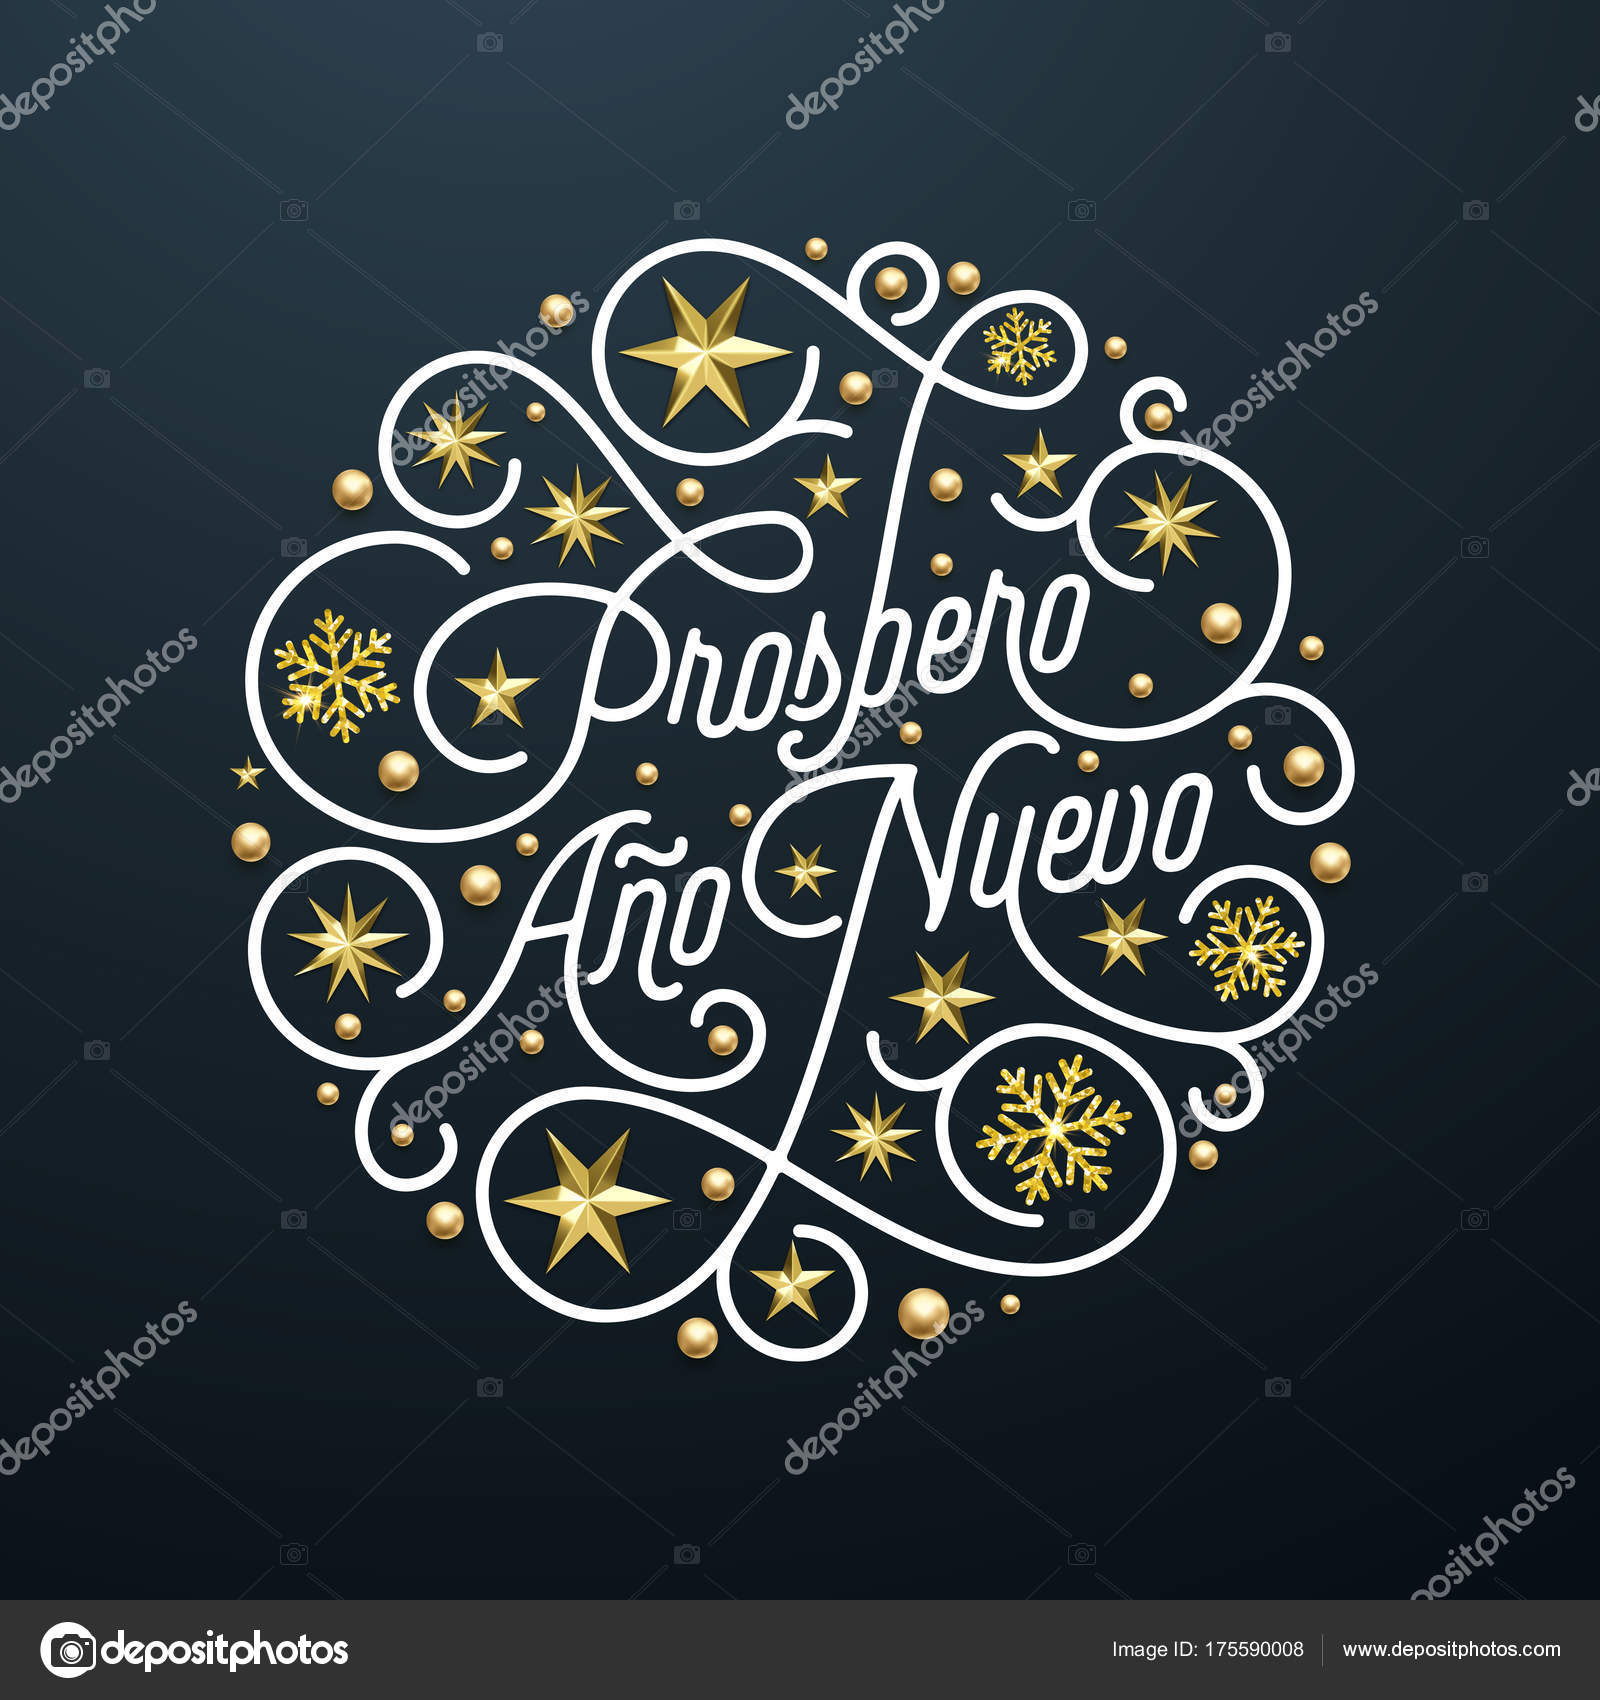 prospero ano nuevo spanish happy new year navidad calligraphy lettering golden snowflake star pattern decoration